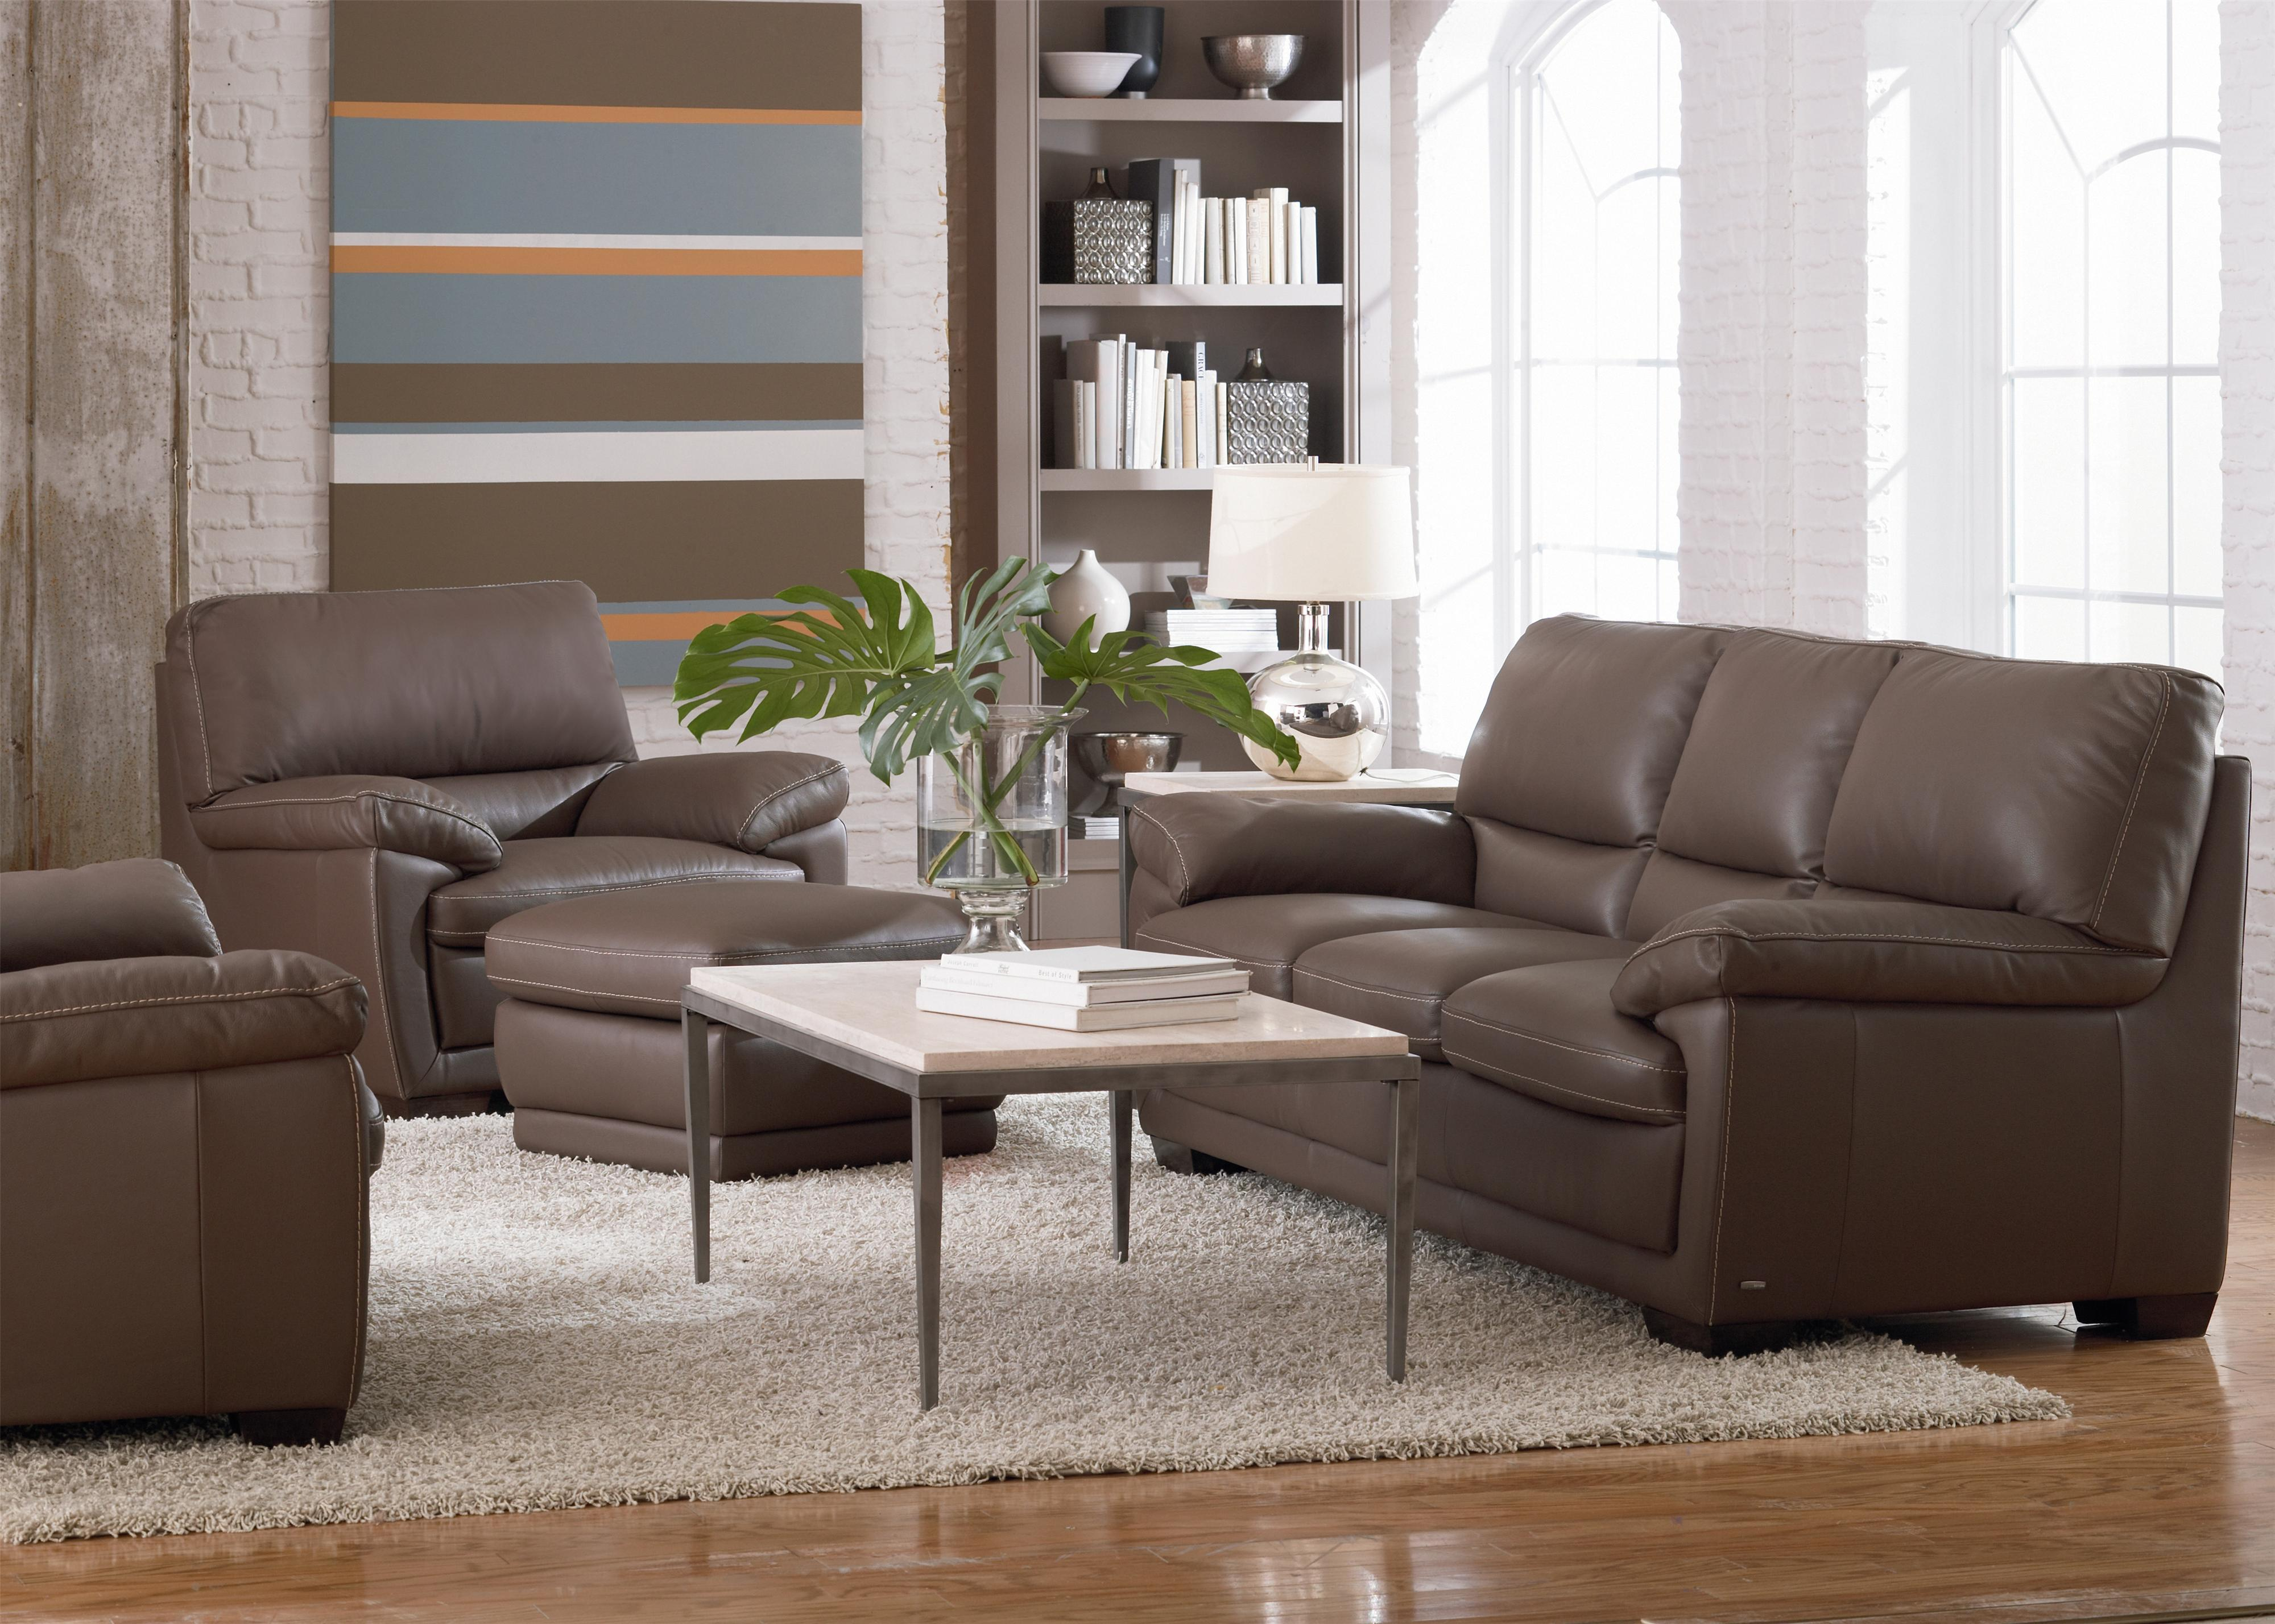 B674 Stationary Living Room Group by Natuzzi Editions at Wilson's Furniture